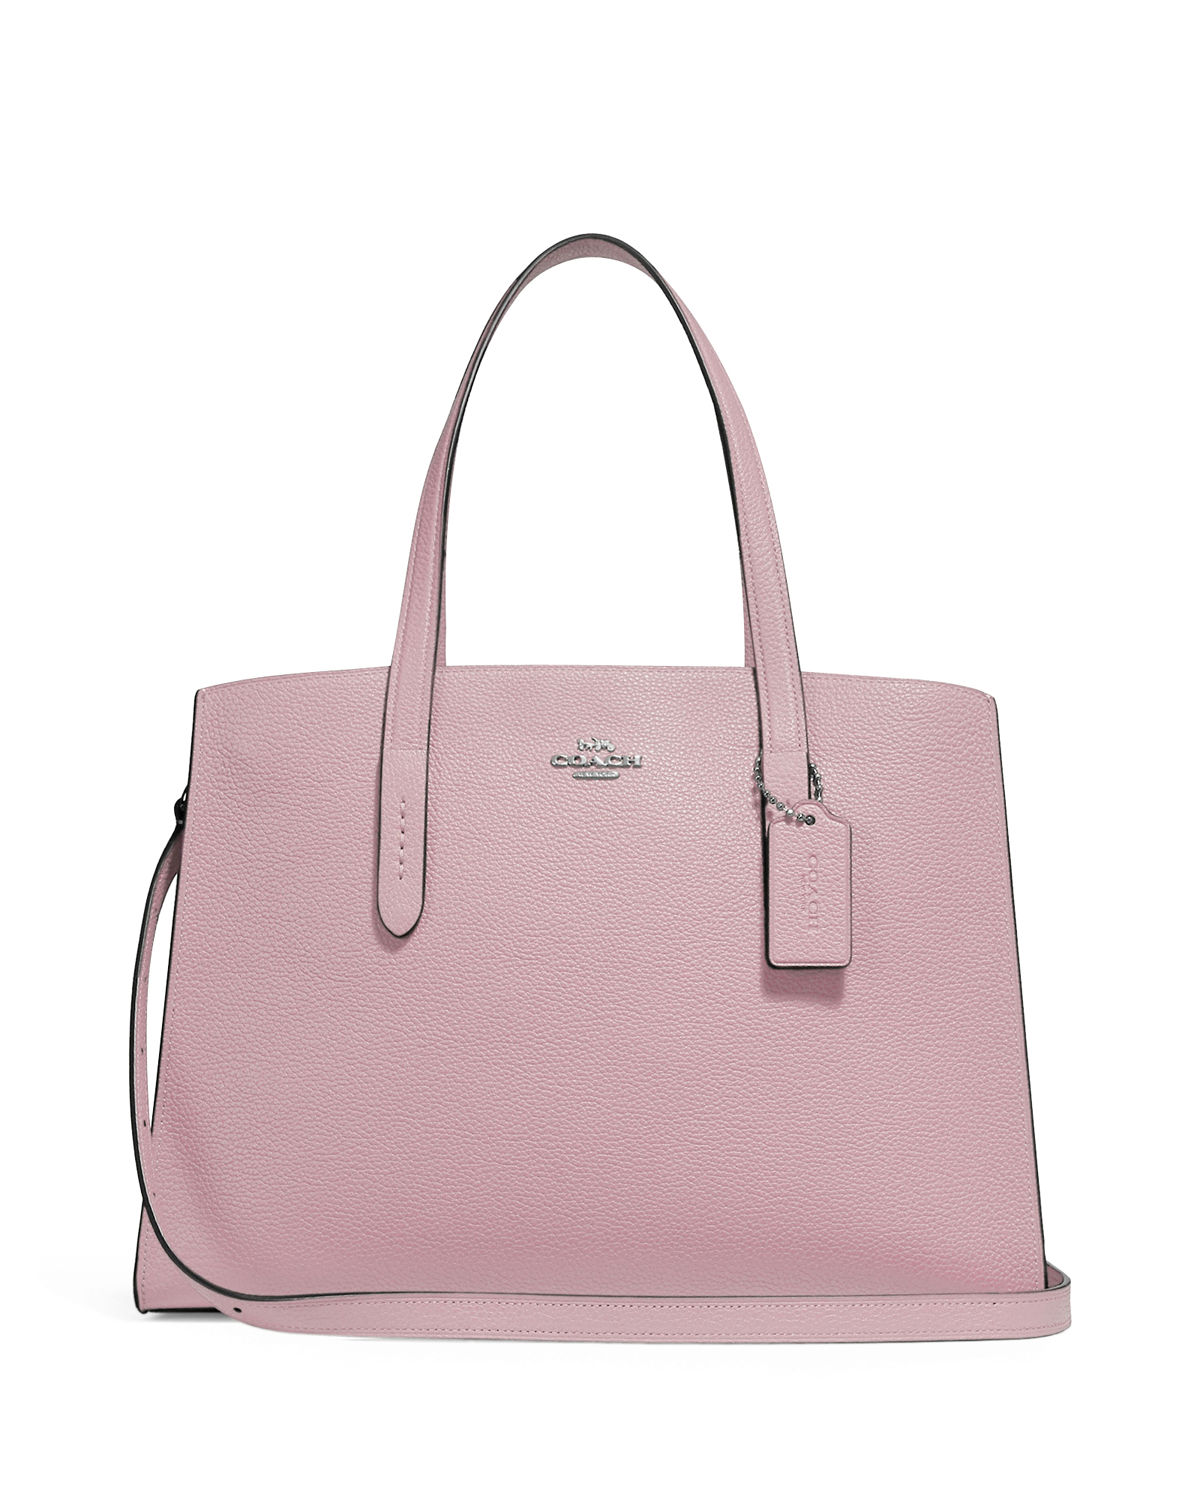 ae845a87d8 Coach 1941 Charlie Polished Pebbled Leather Carryall Tote Bag ...